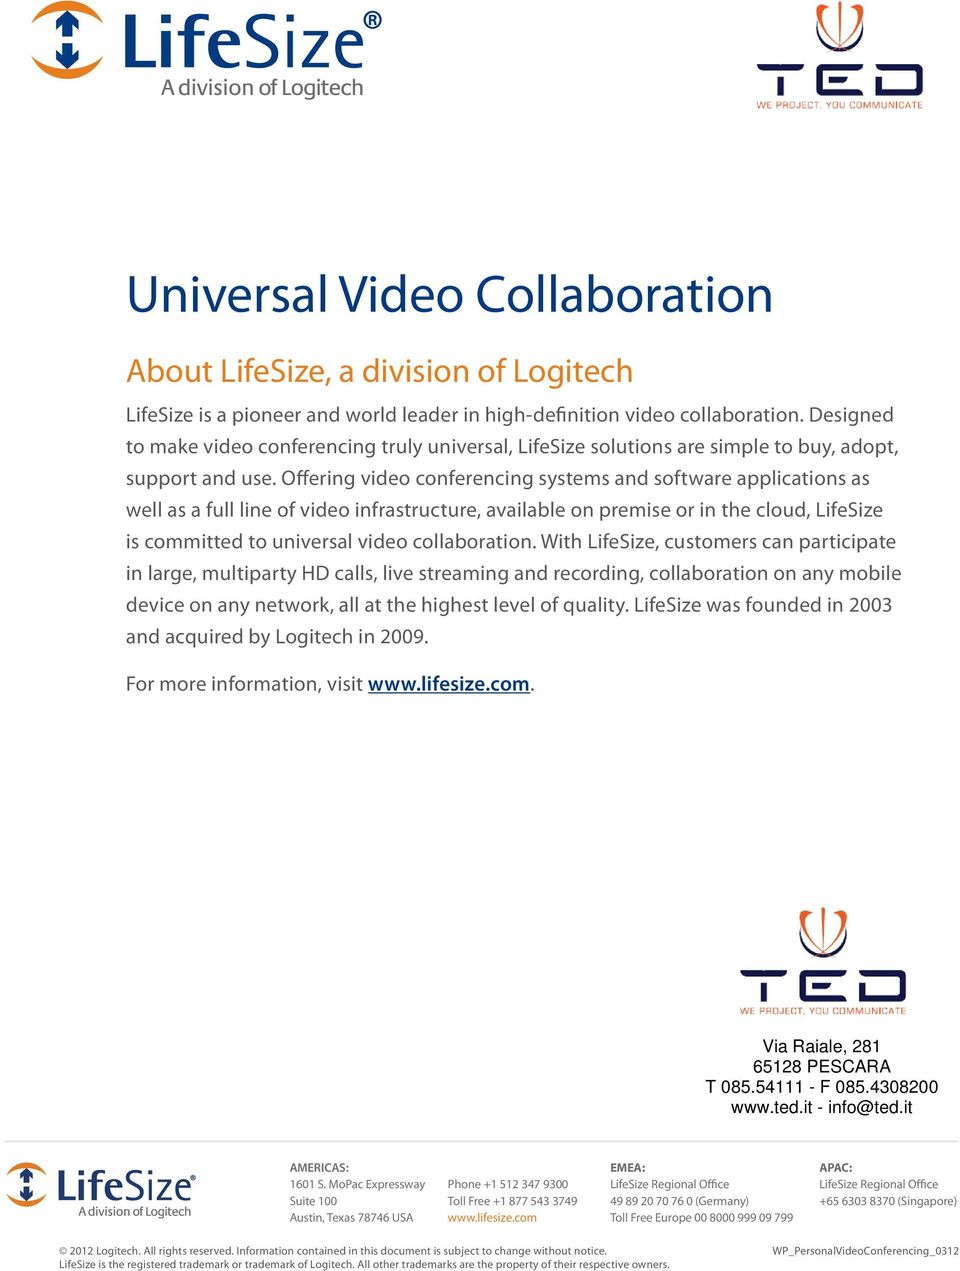 Offering video conferencing systems and software applications as well as a full line of video infrastructure, available on premise or in the cloud, LifeSize is committed to universal video